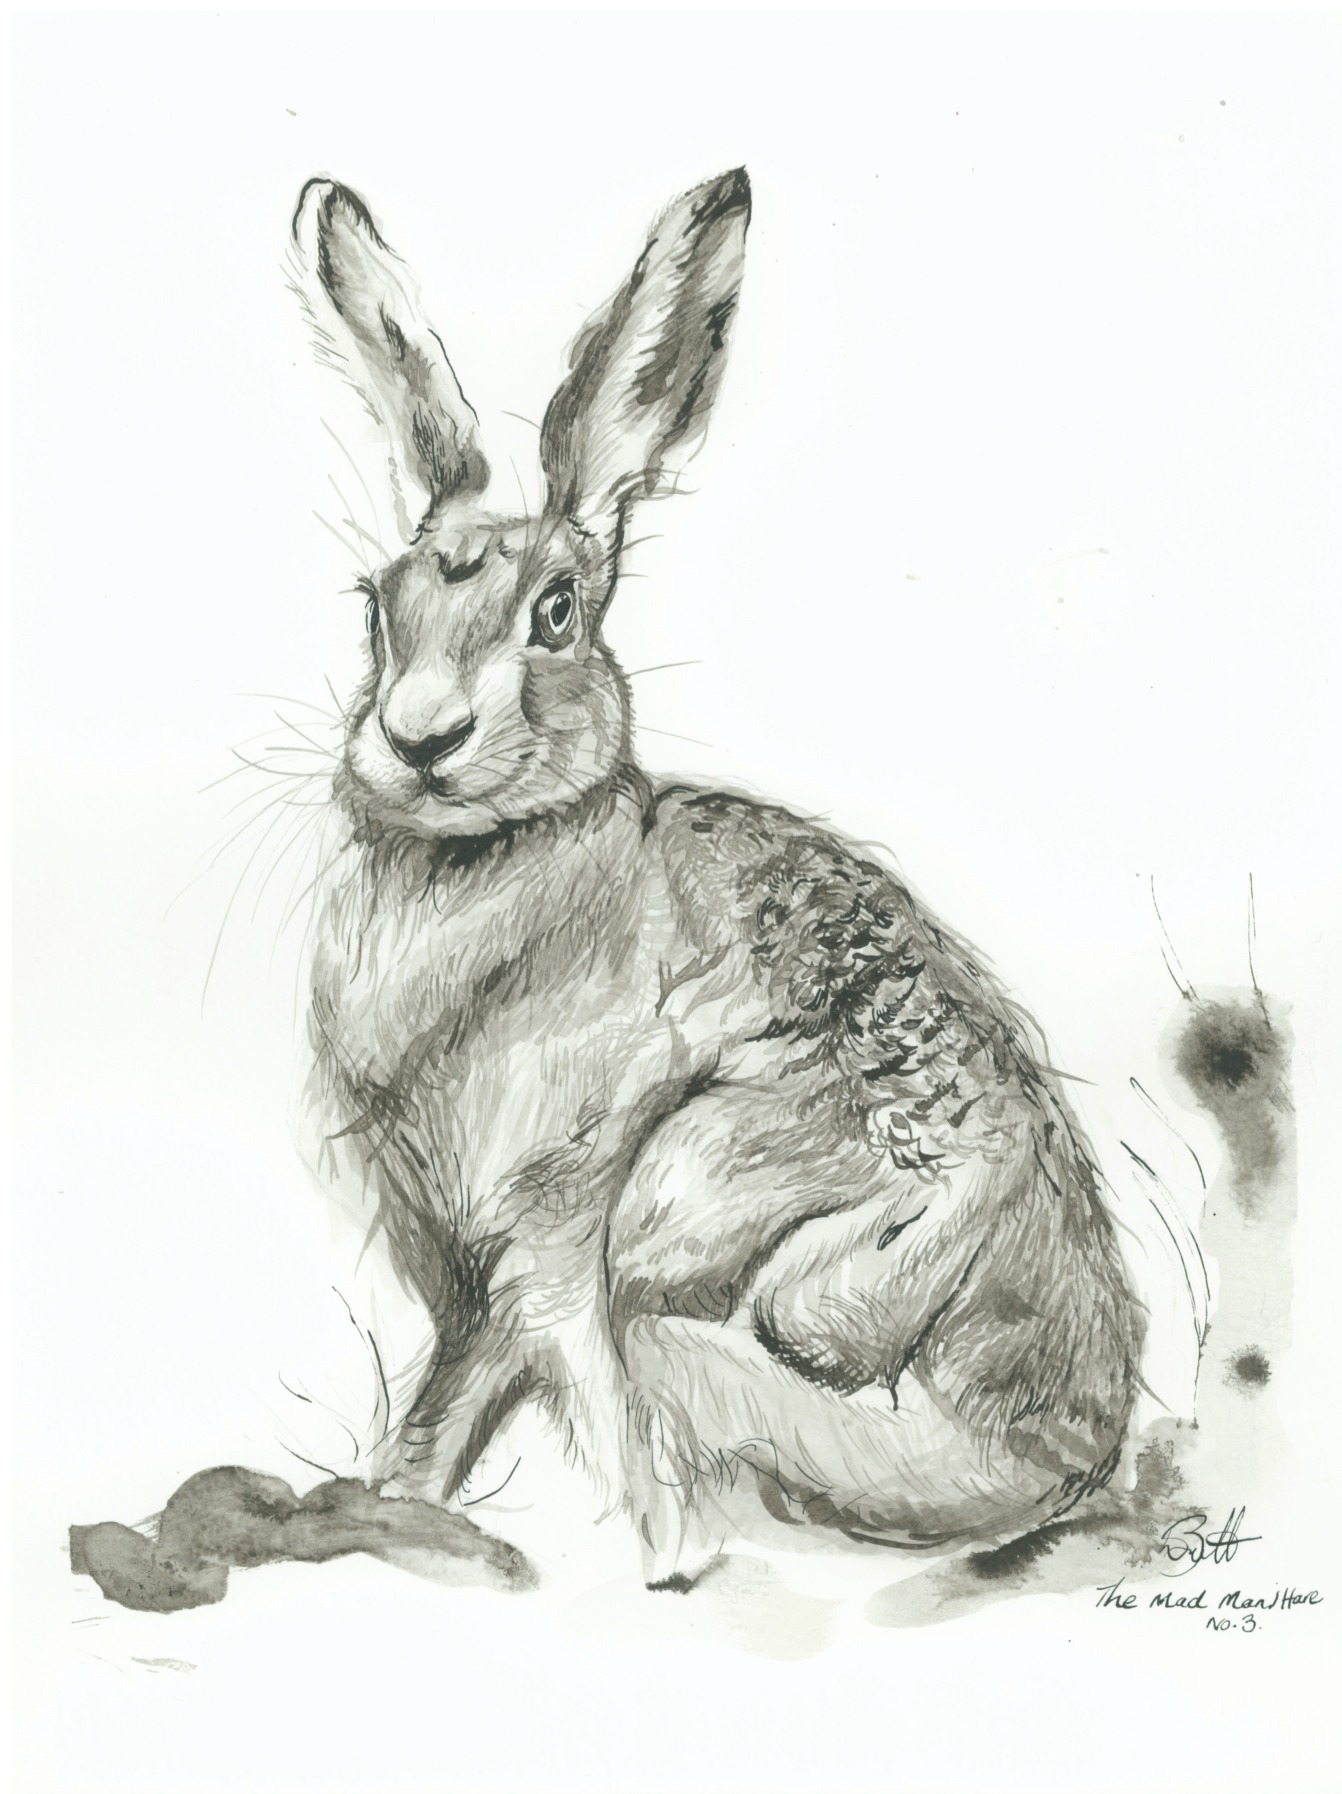 The Mad Manj Hare no.3